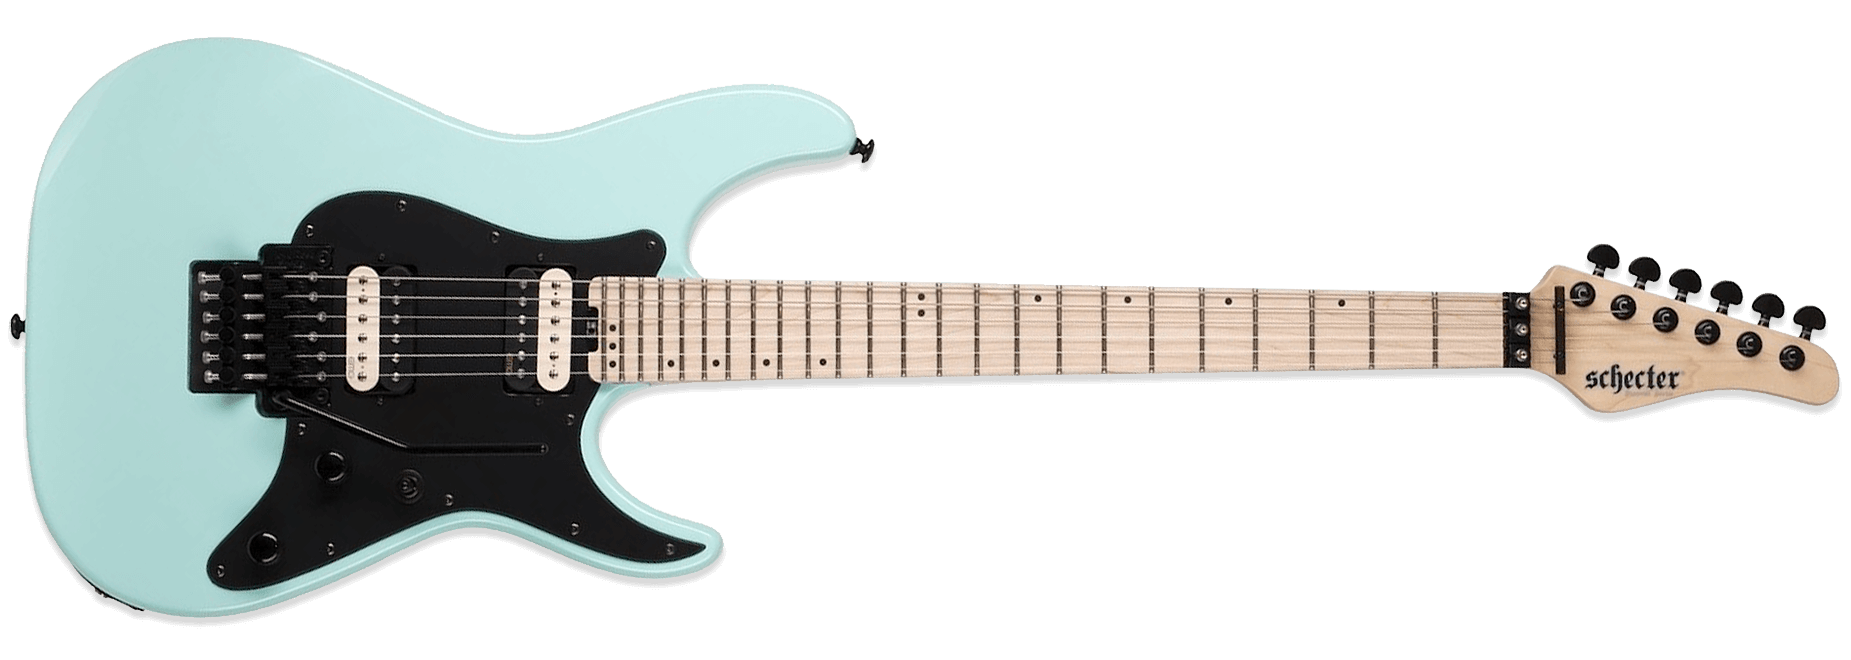 Schecter Sun Valley Super Shredder FR Sea Foam Green